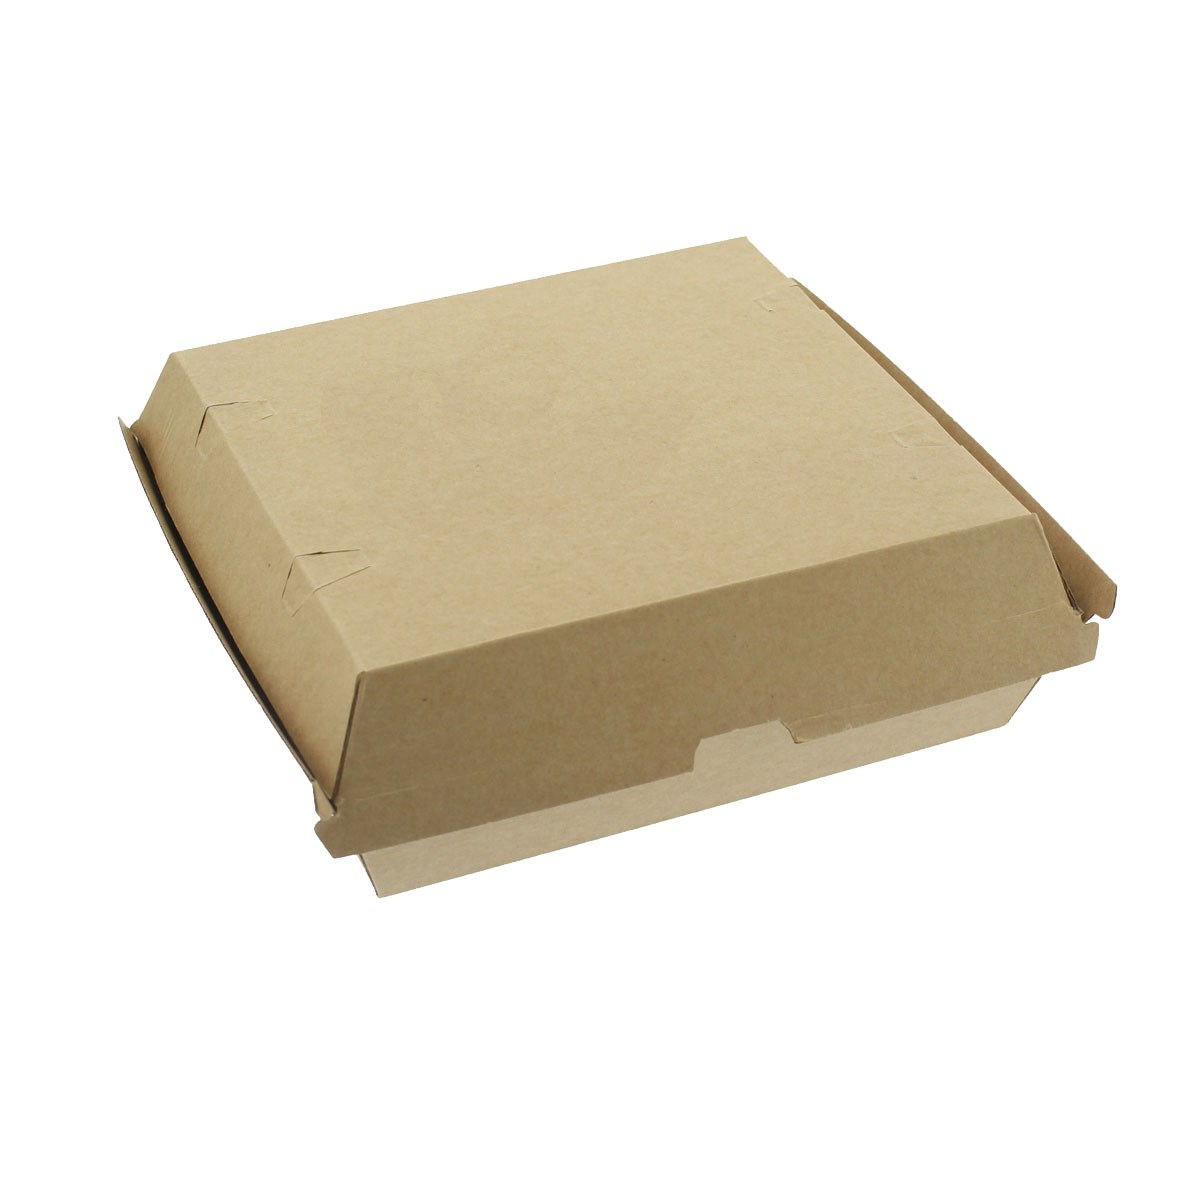 Meal Boxes with Lid Kraft - Extra Large - 7